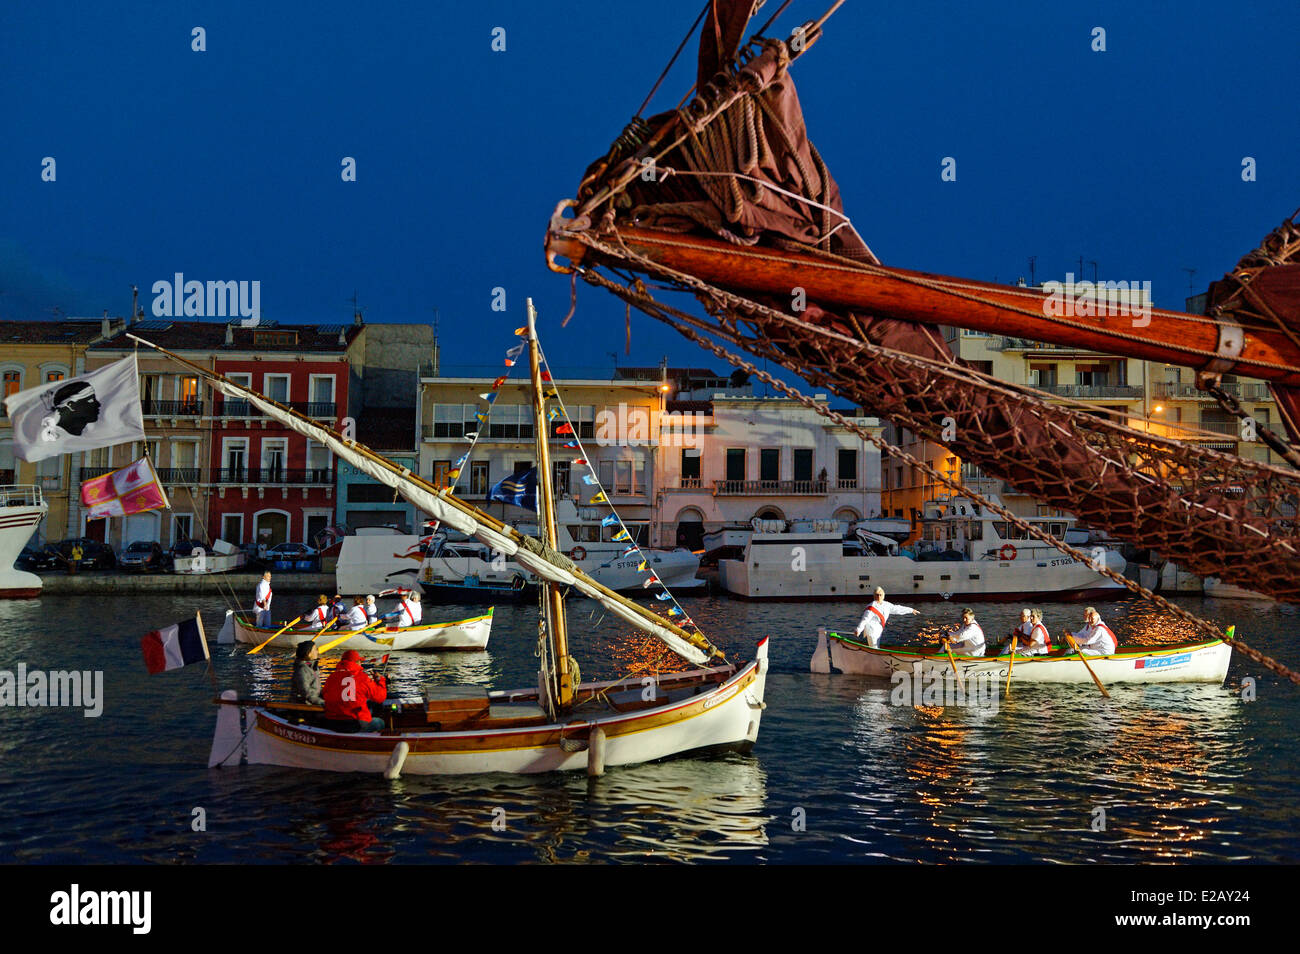 France, Herault, Sete, Quai du General Durand, Royal Canal, Maritime Traditions Festival, passing sails of night - Stock Image